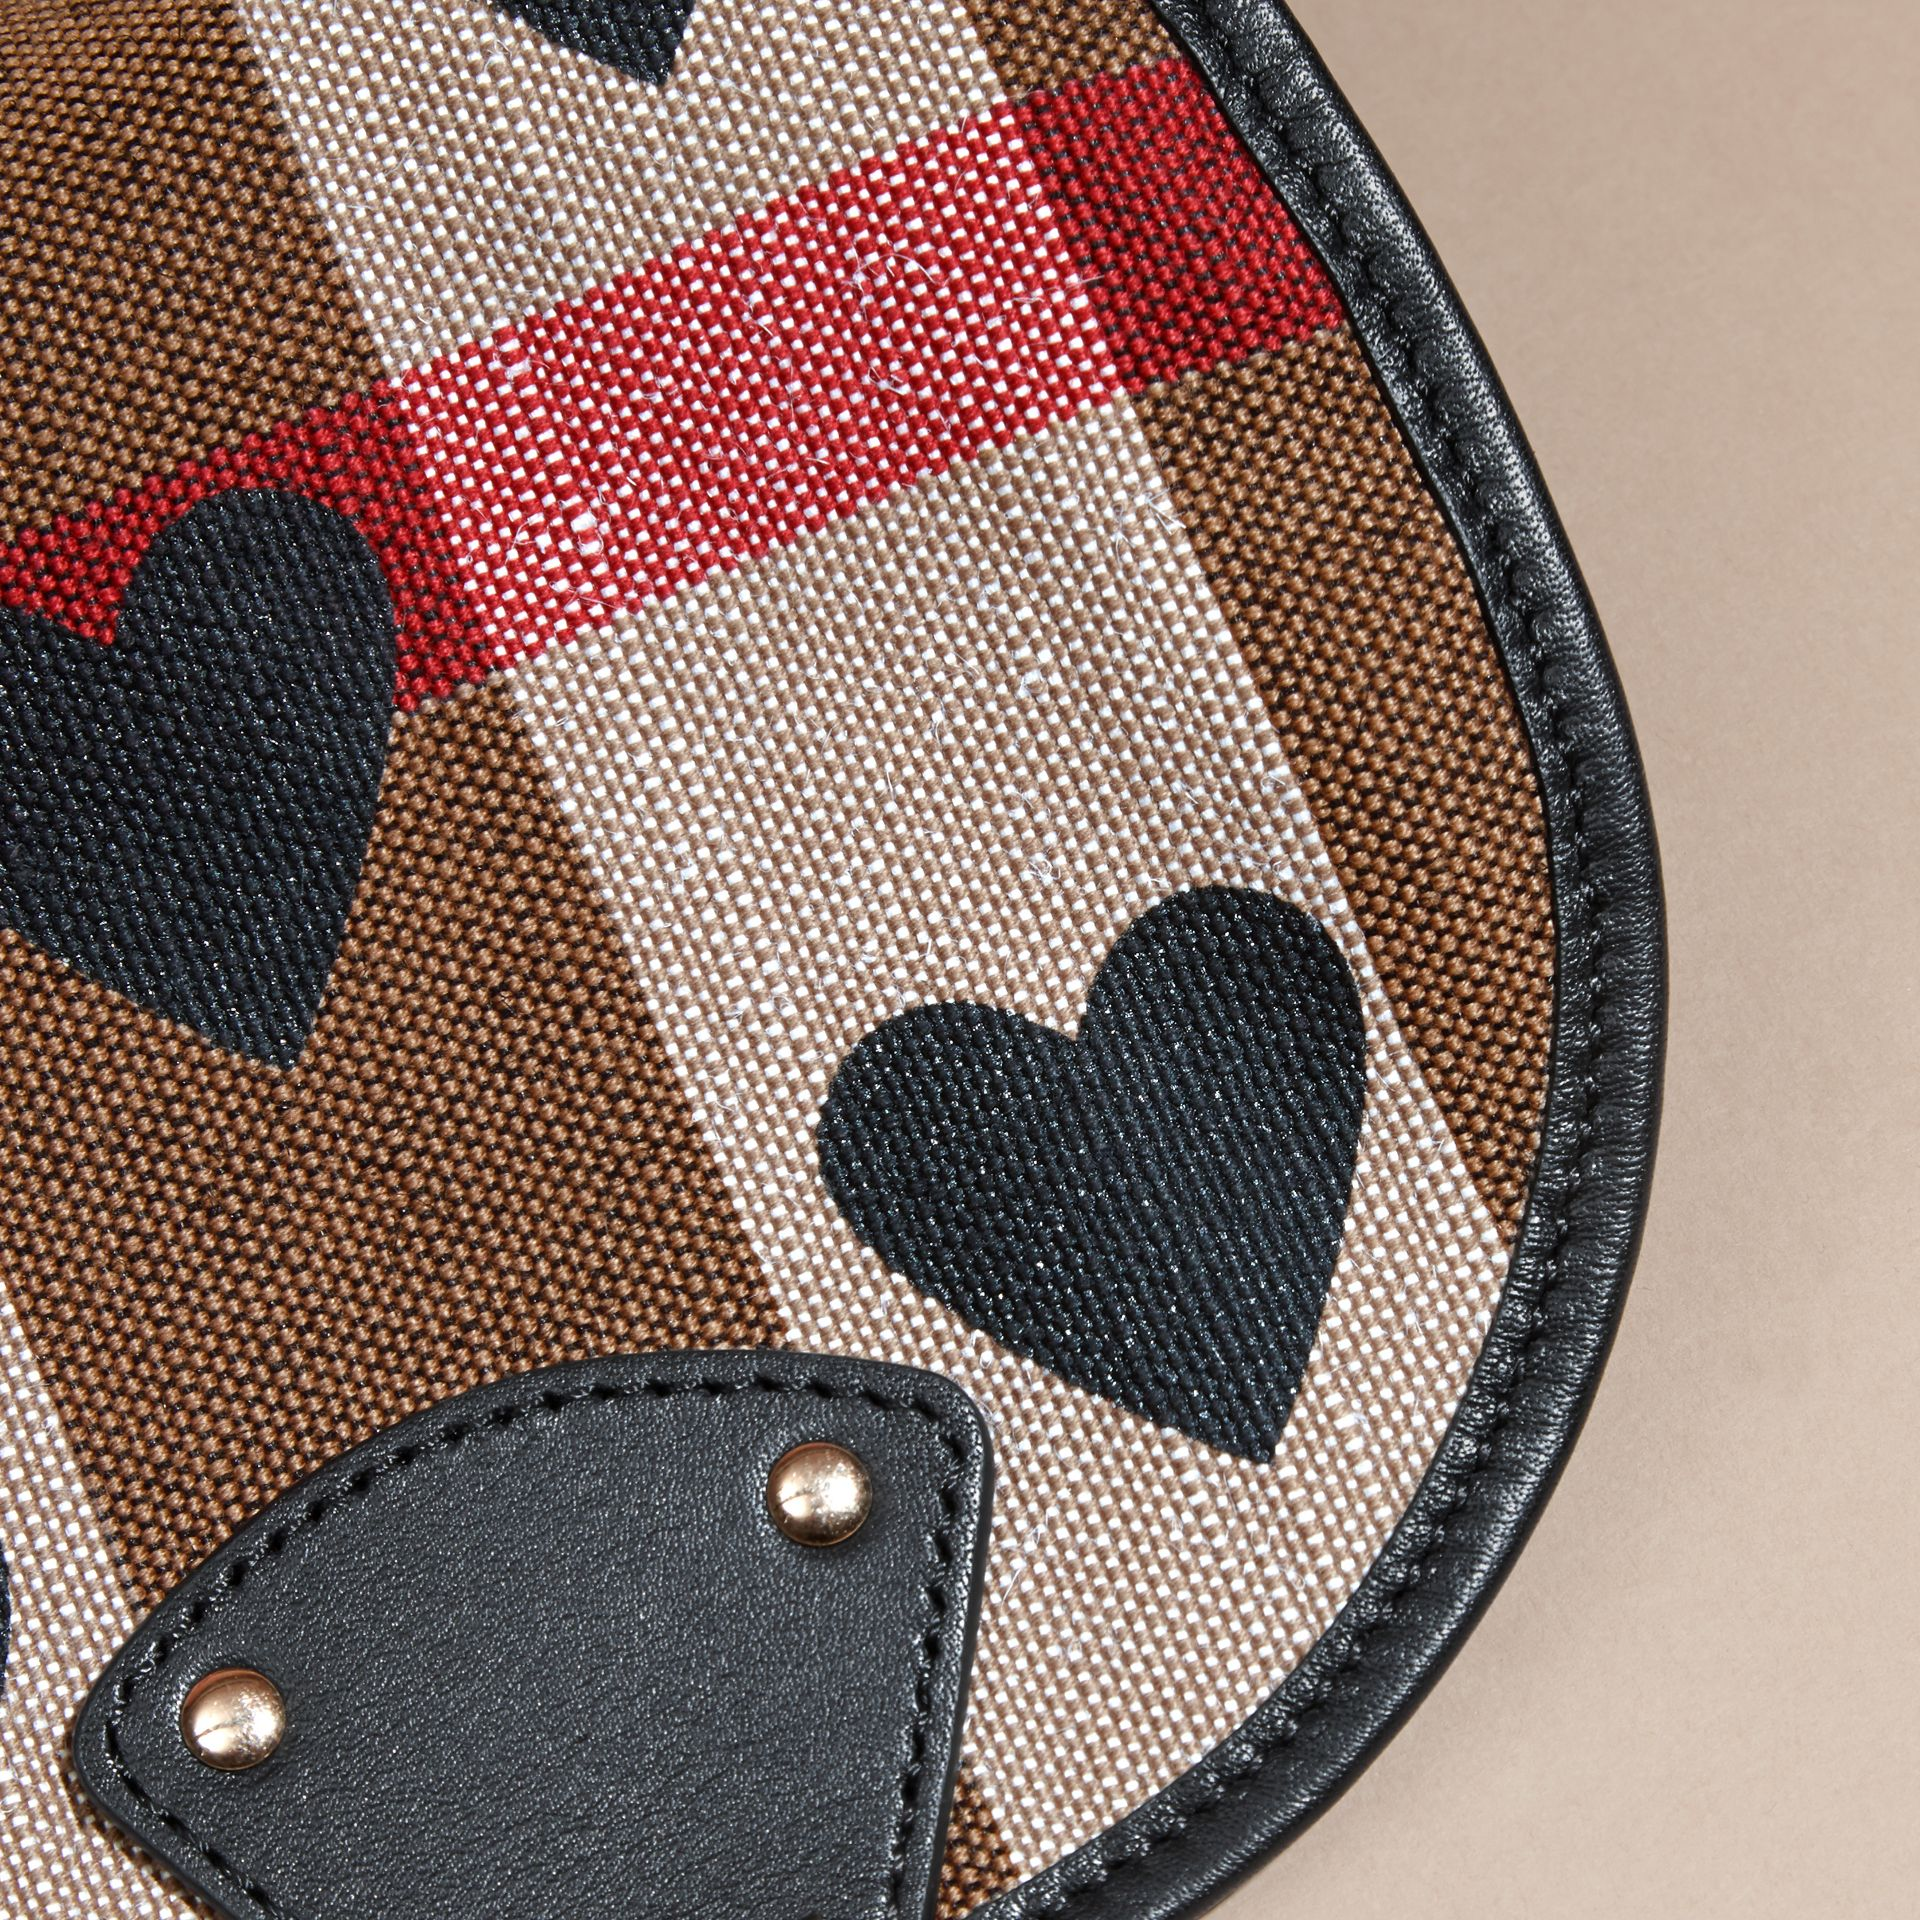 Black Heart Print Canvas Check Backpack with Leather Trim Black - gallery image 4